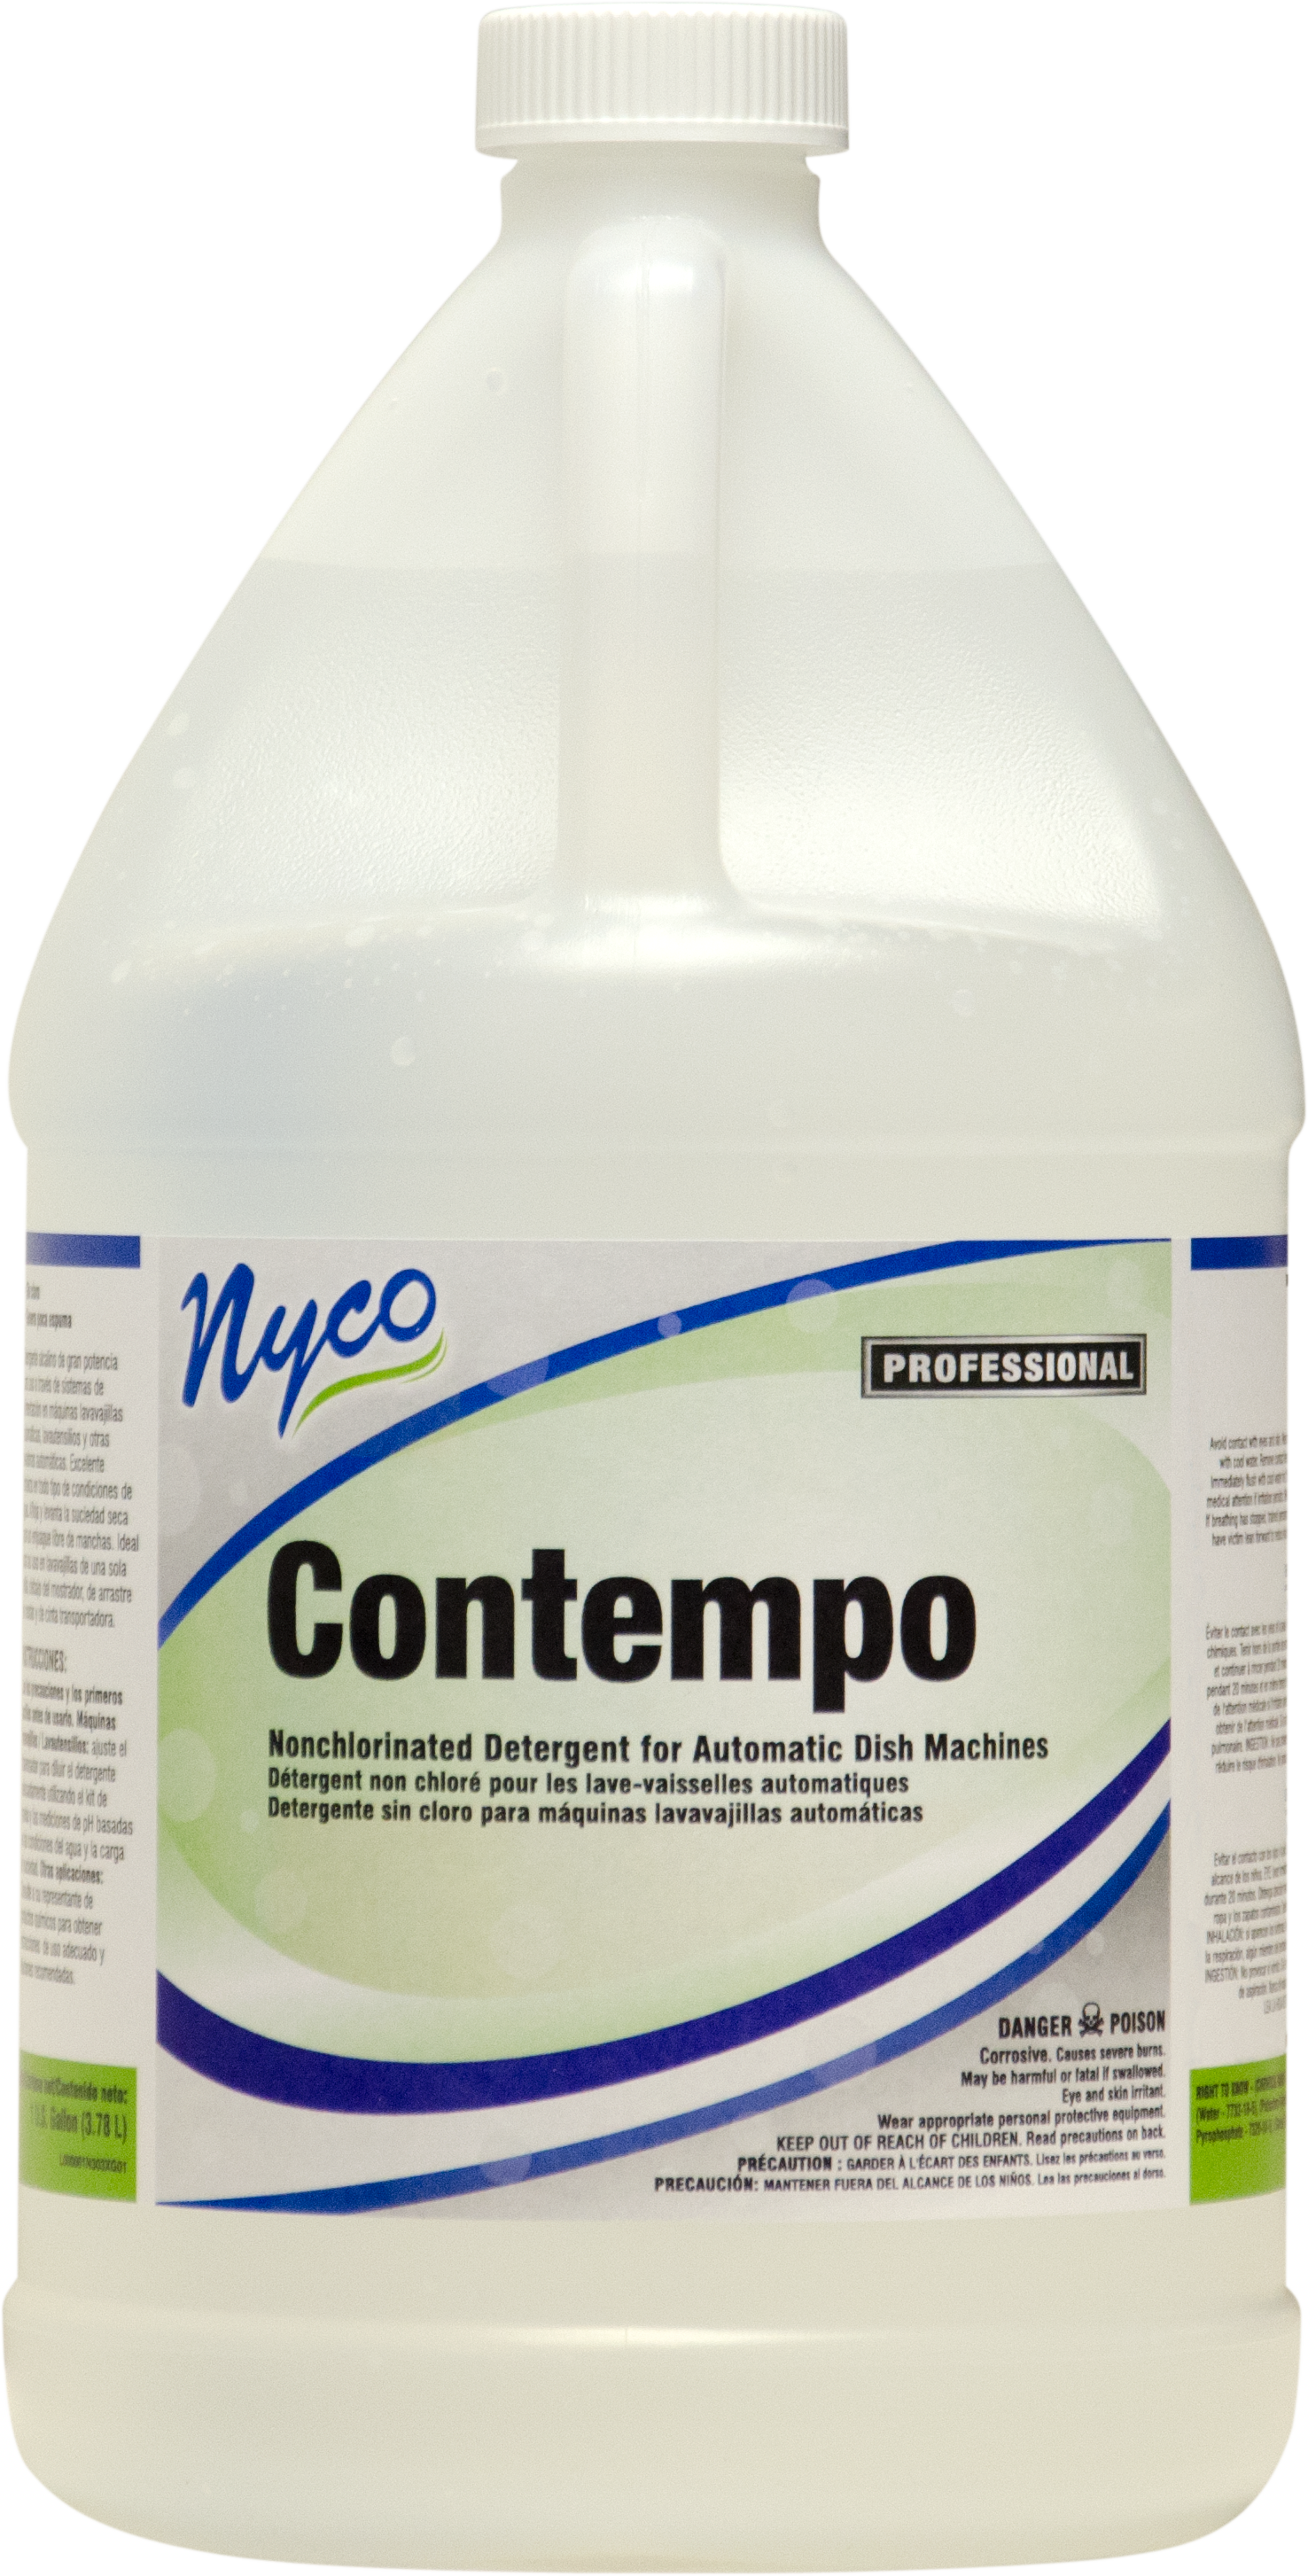 Nyco NL303-G4 contempo nonchlorinated detergent for automatic dish machines